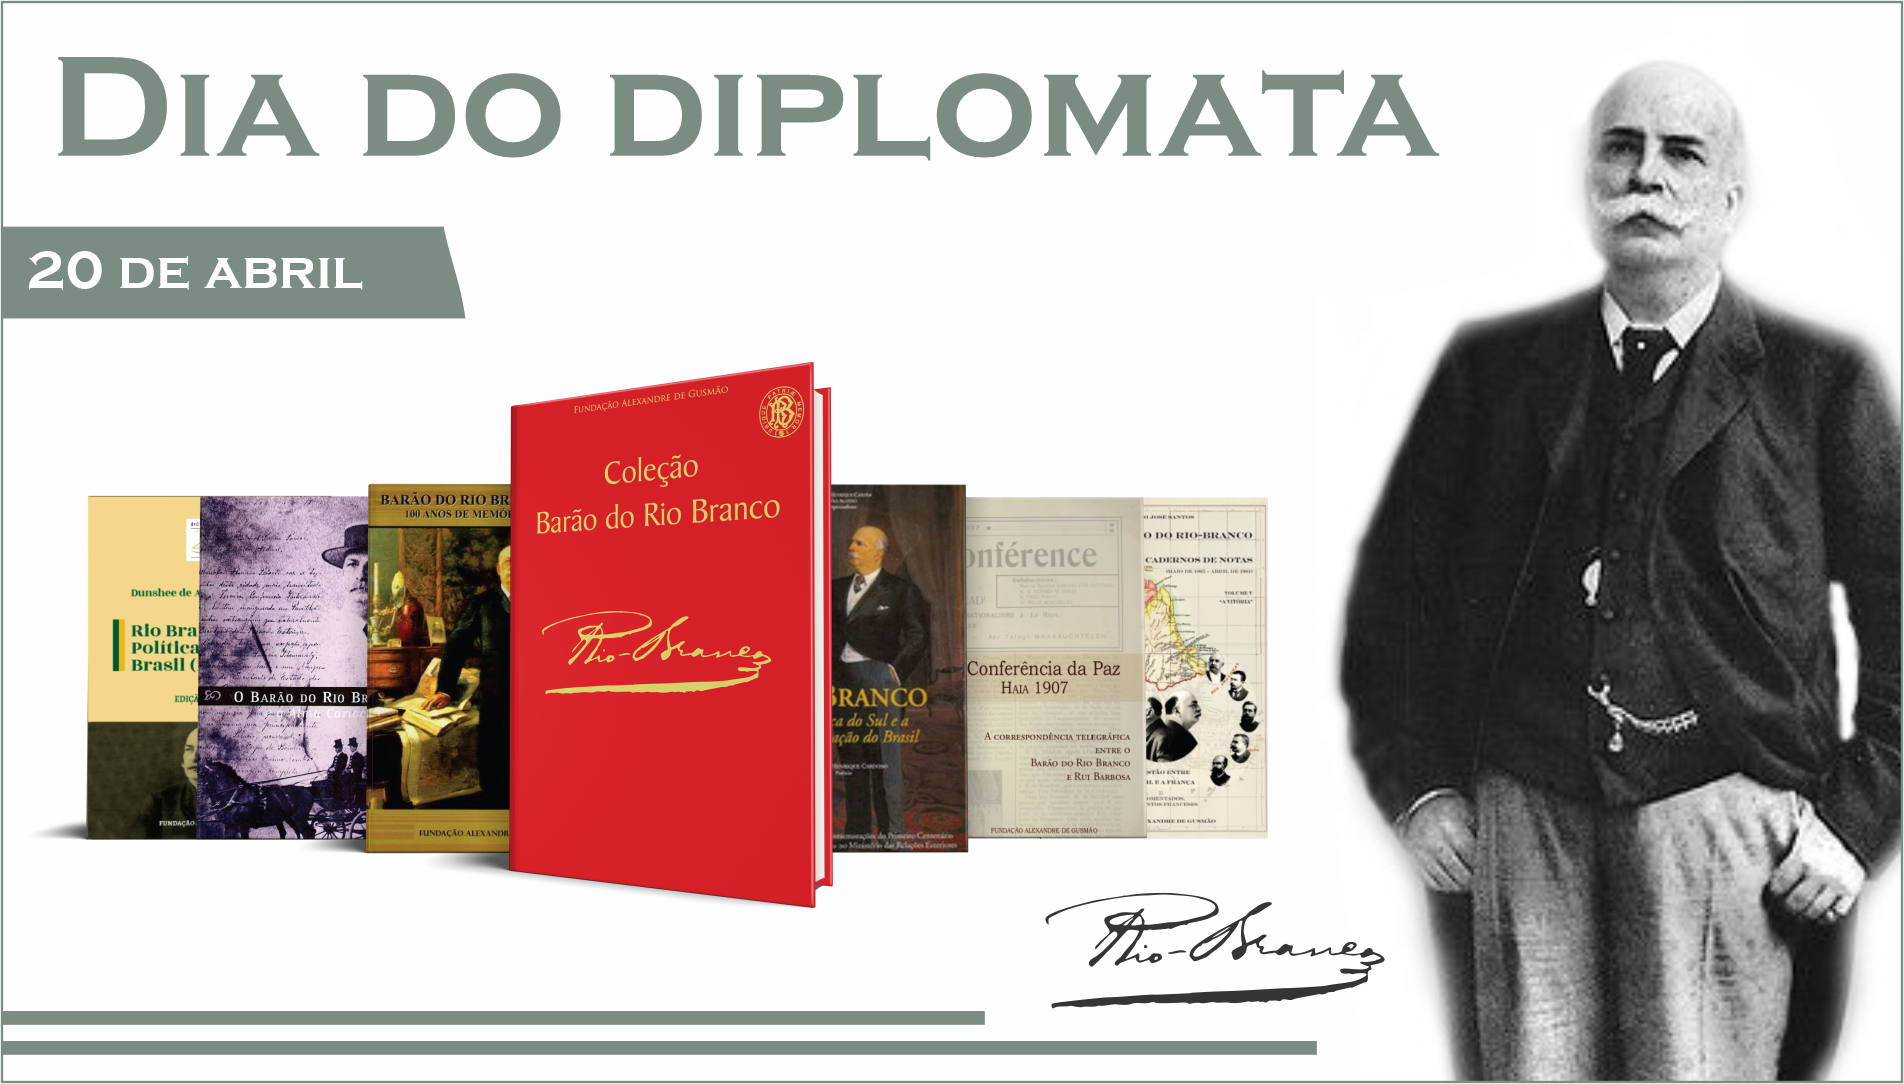 Diplomat day - works about the Baron of Rio Branco